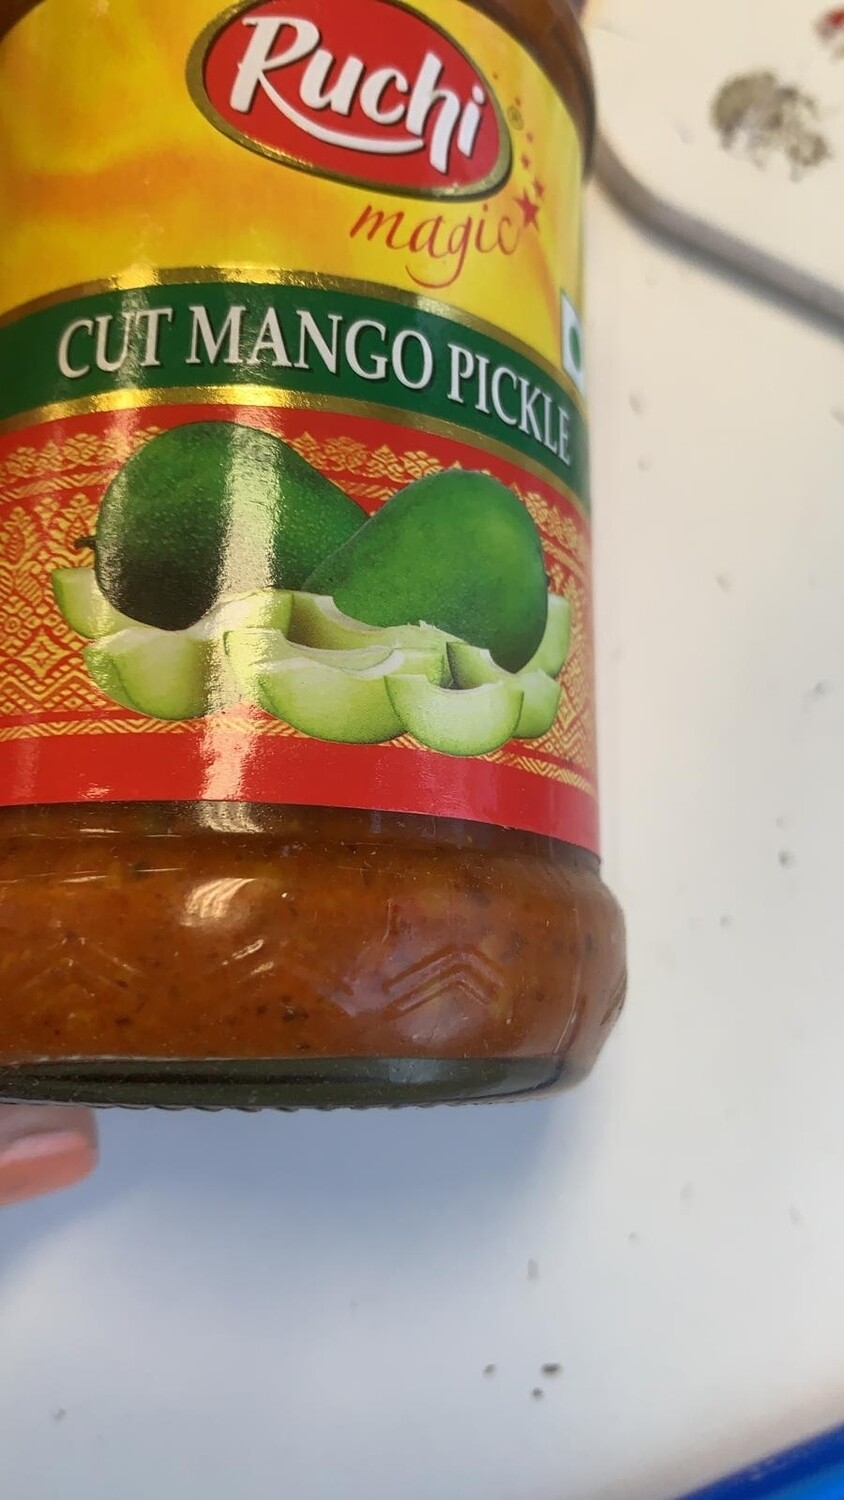 RUCHI MAGIC CUT MANGO PICKLE 300gm